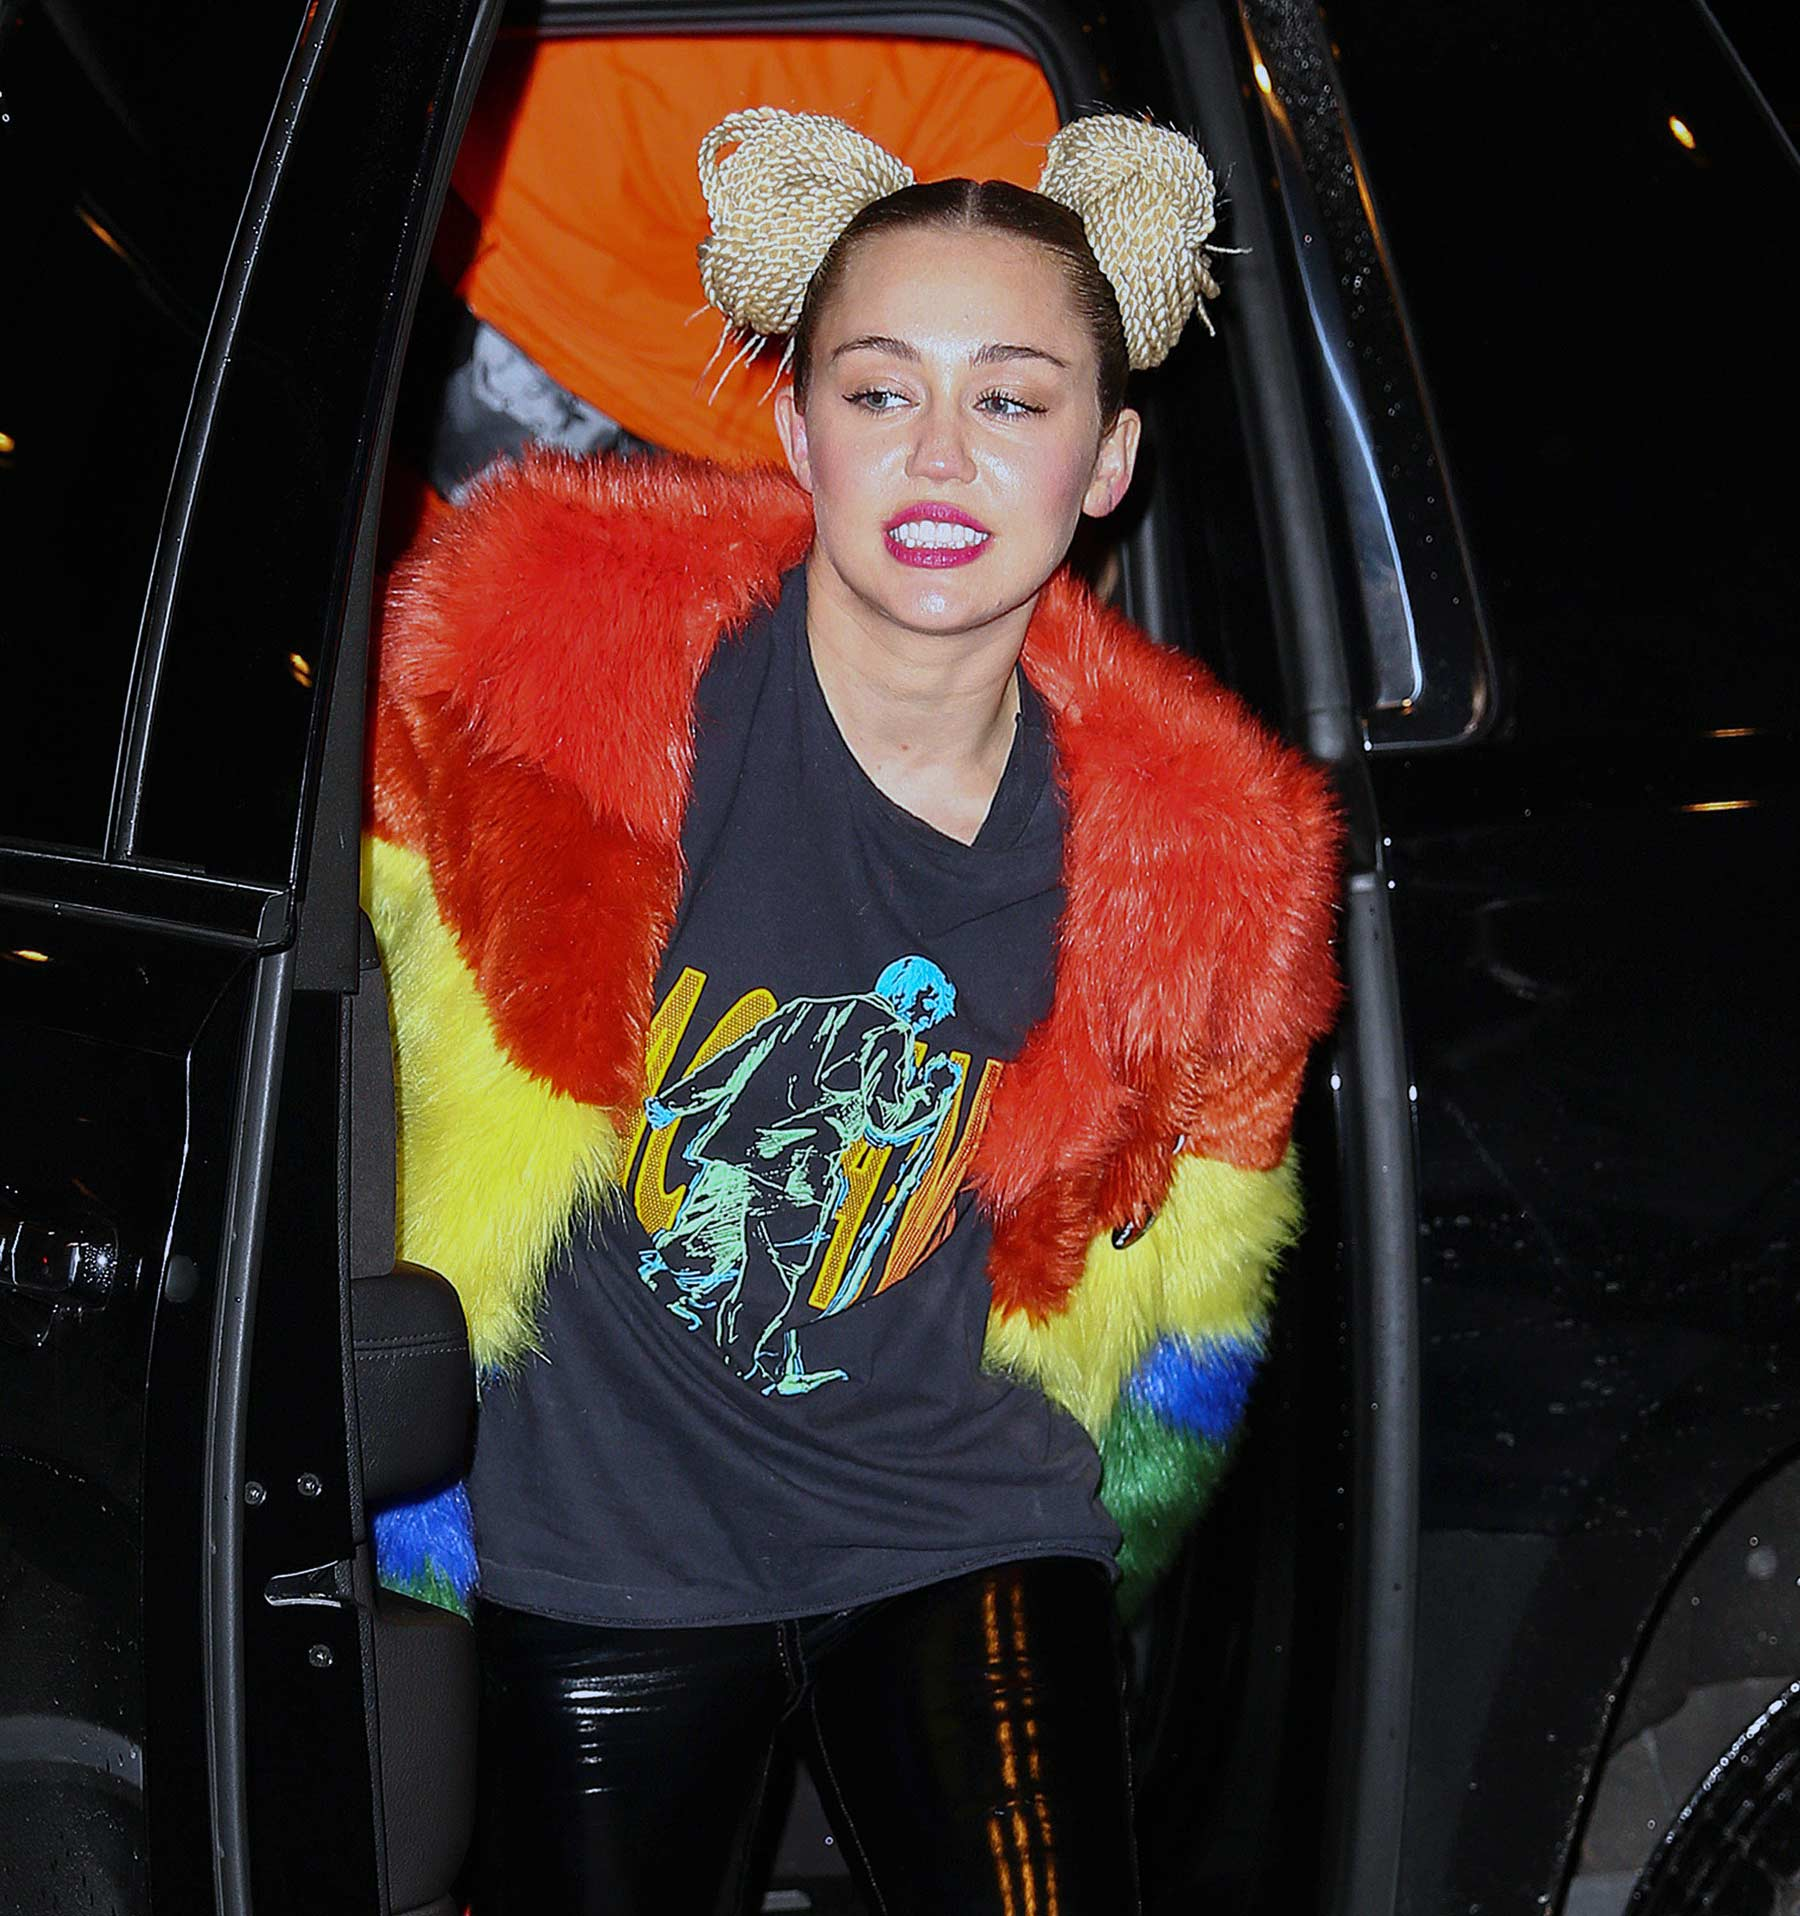 Miley Cyrus sighted in New York City